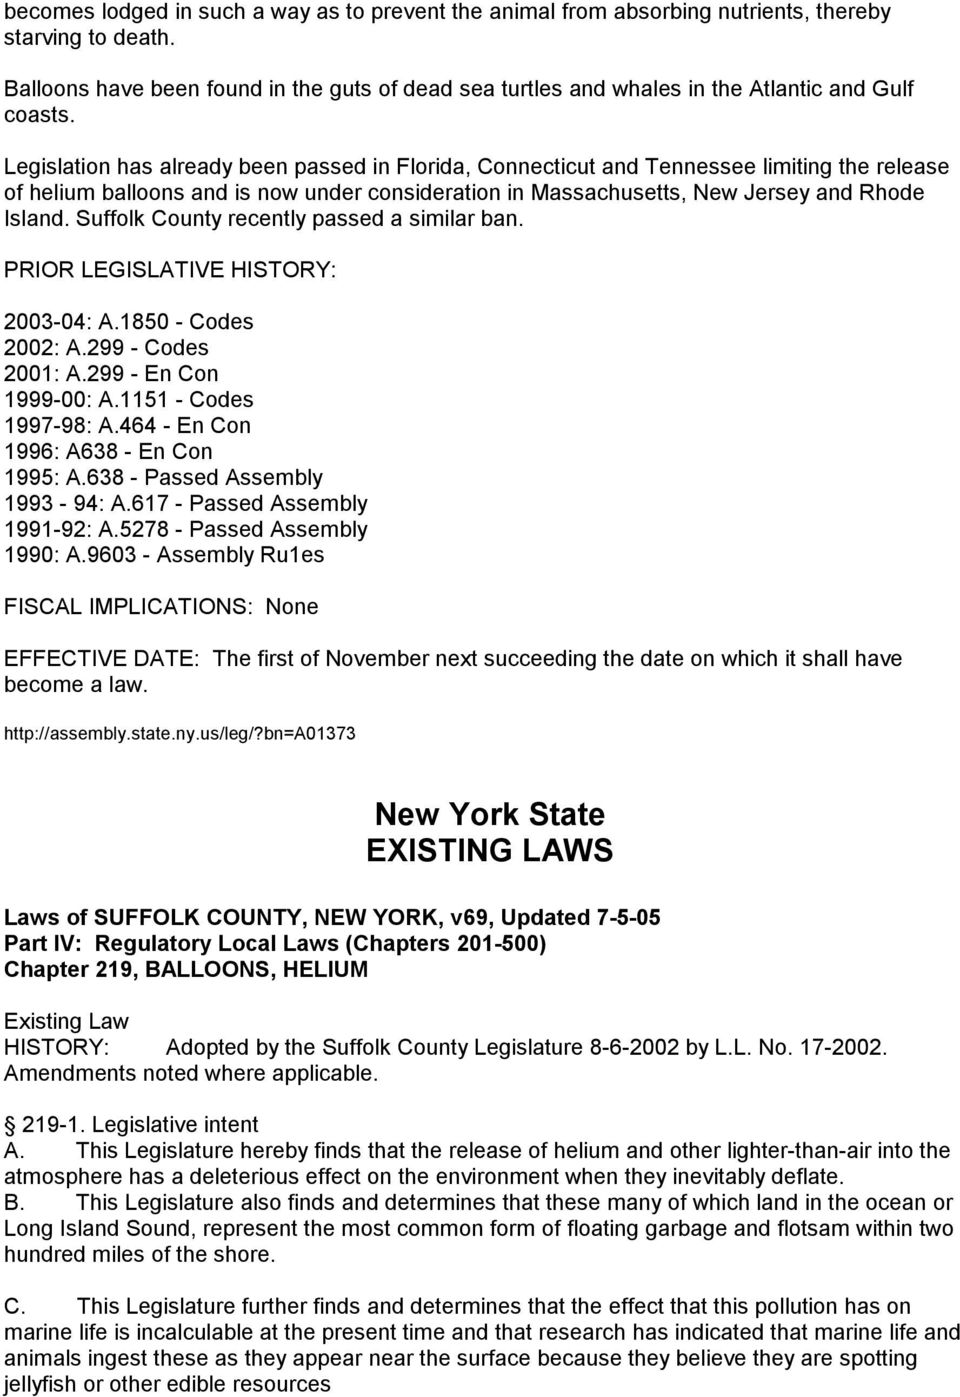 new york state bills and laws concerning balloons pdf